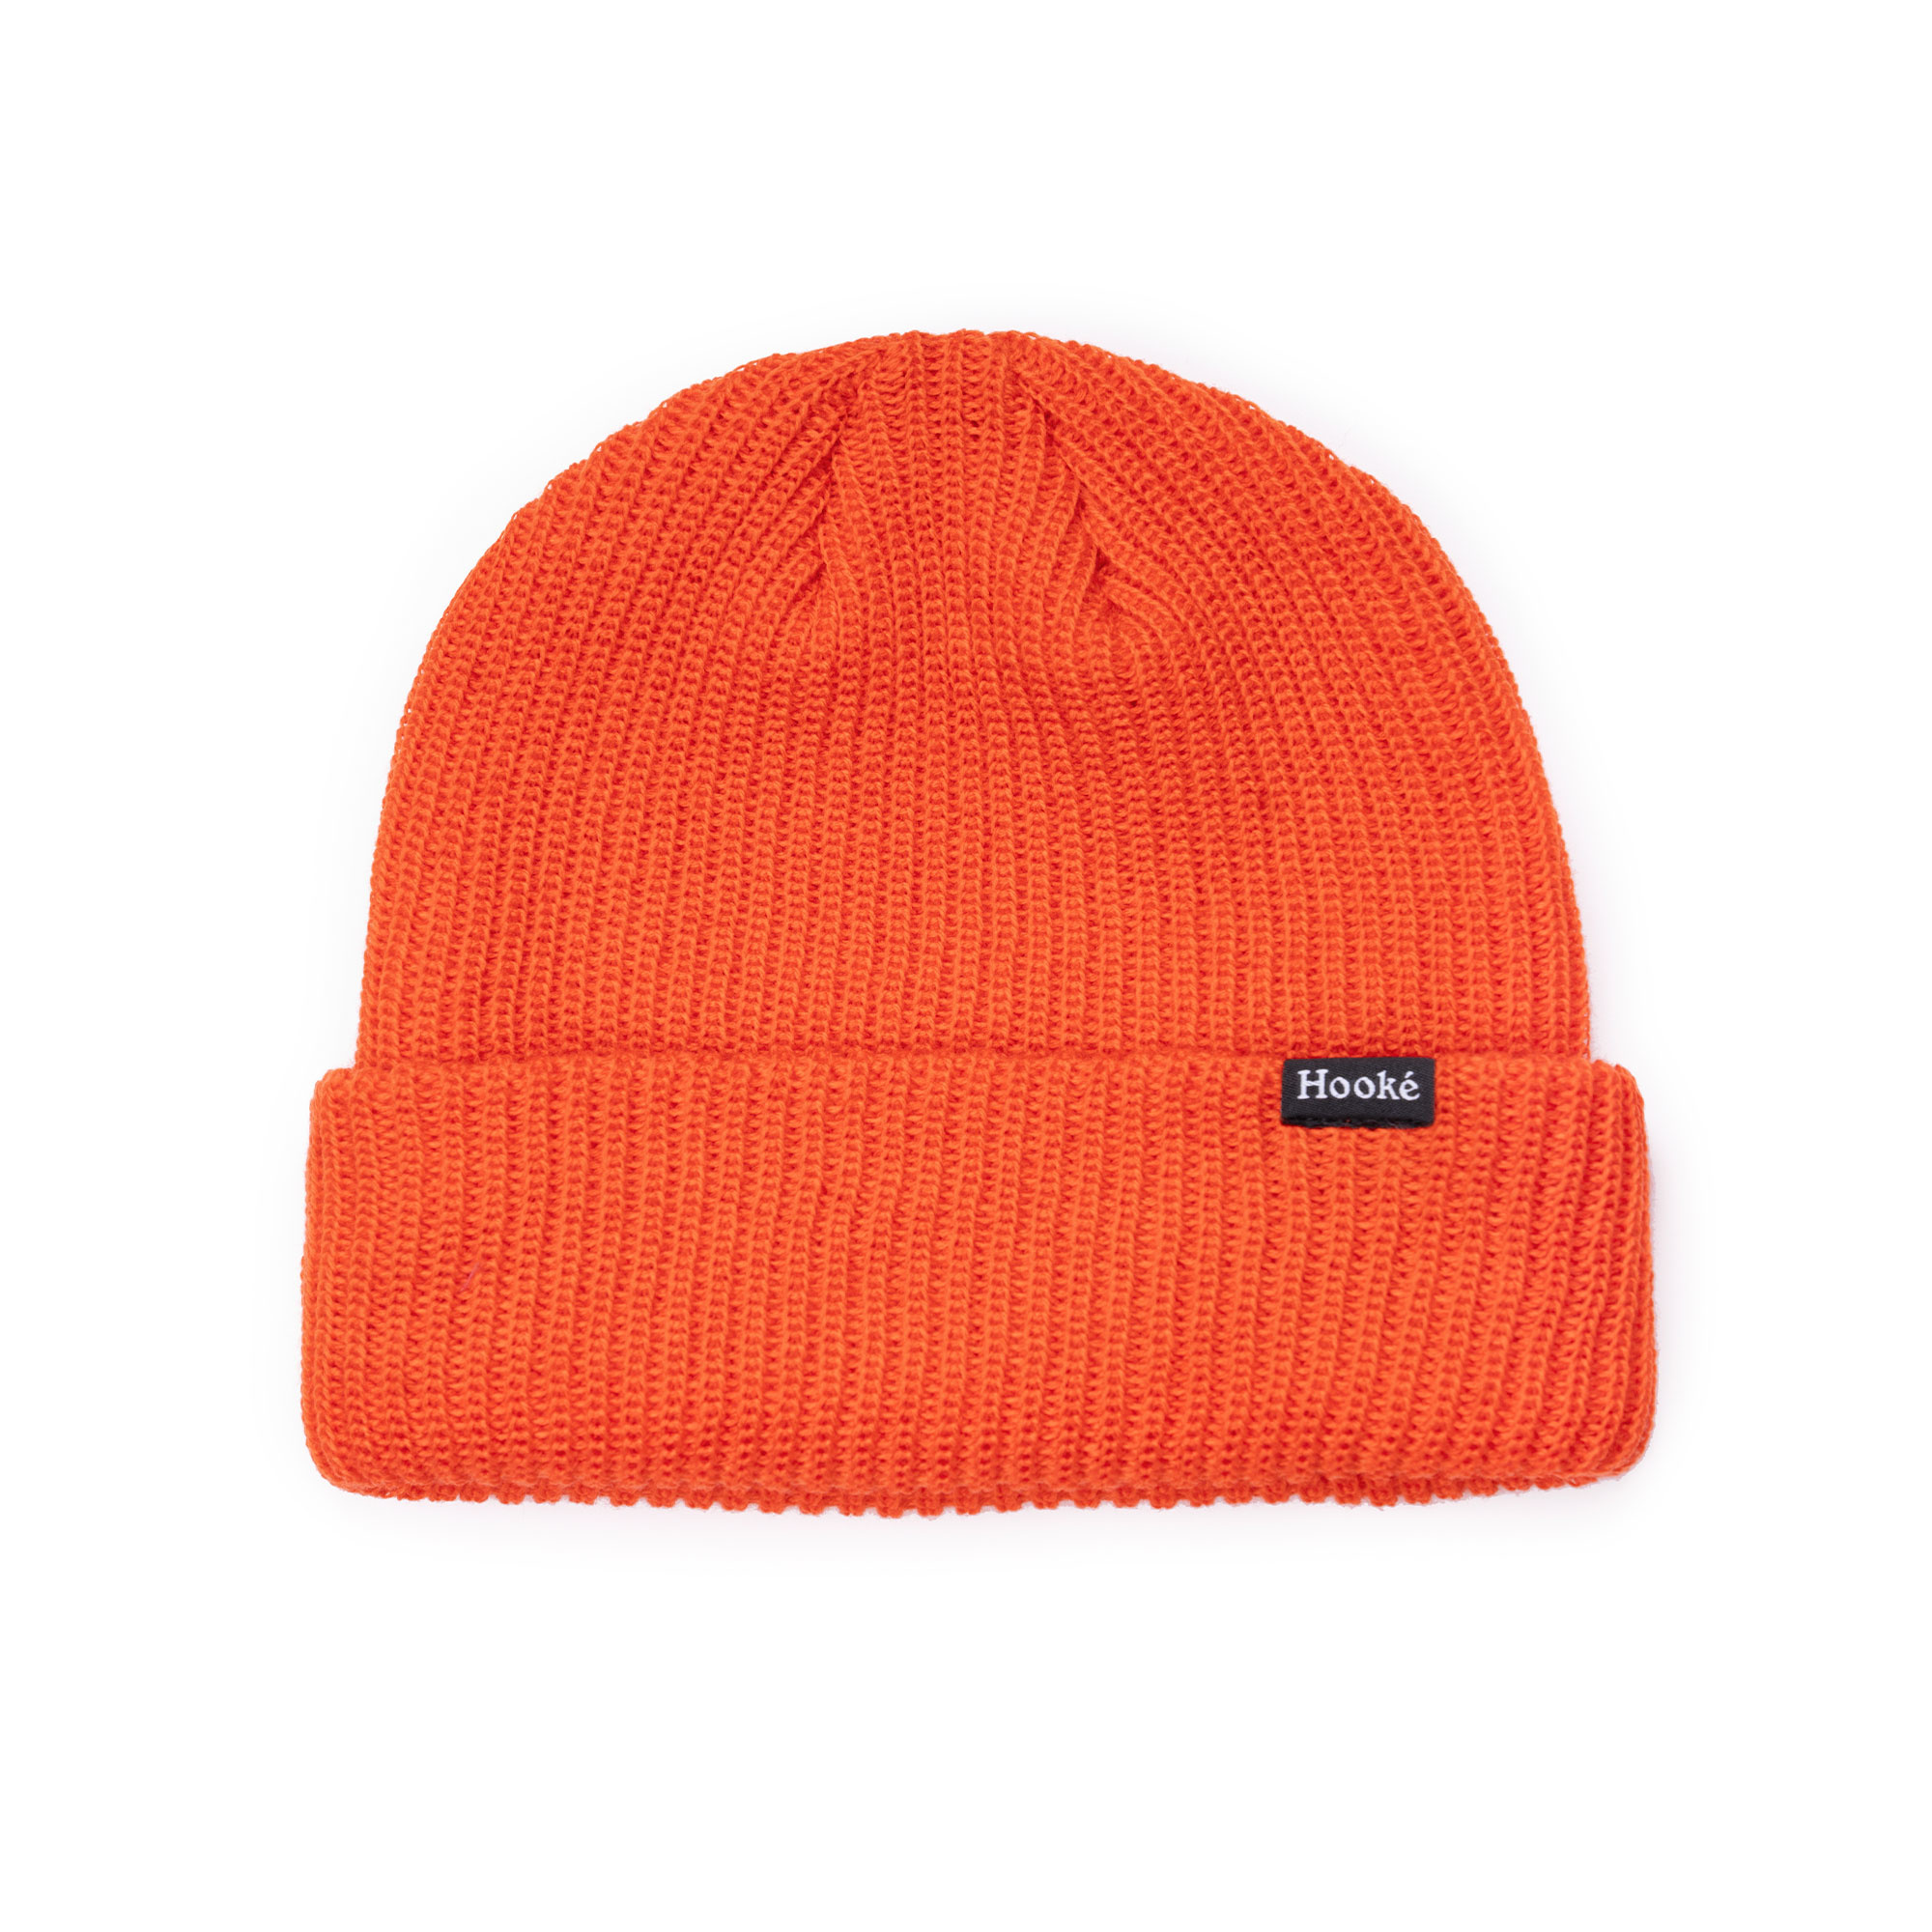 Hooké Original Beanie Blaze Orange